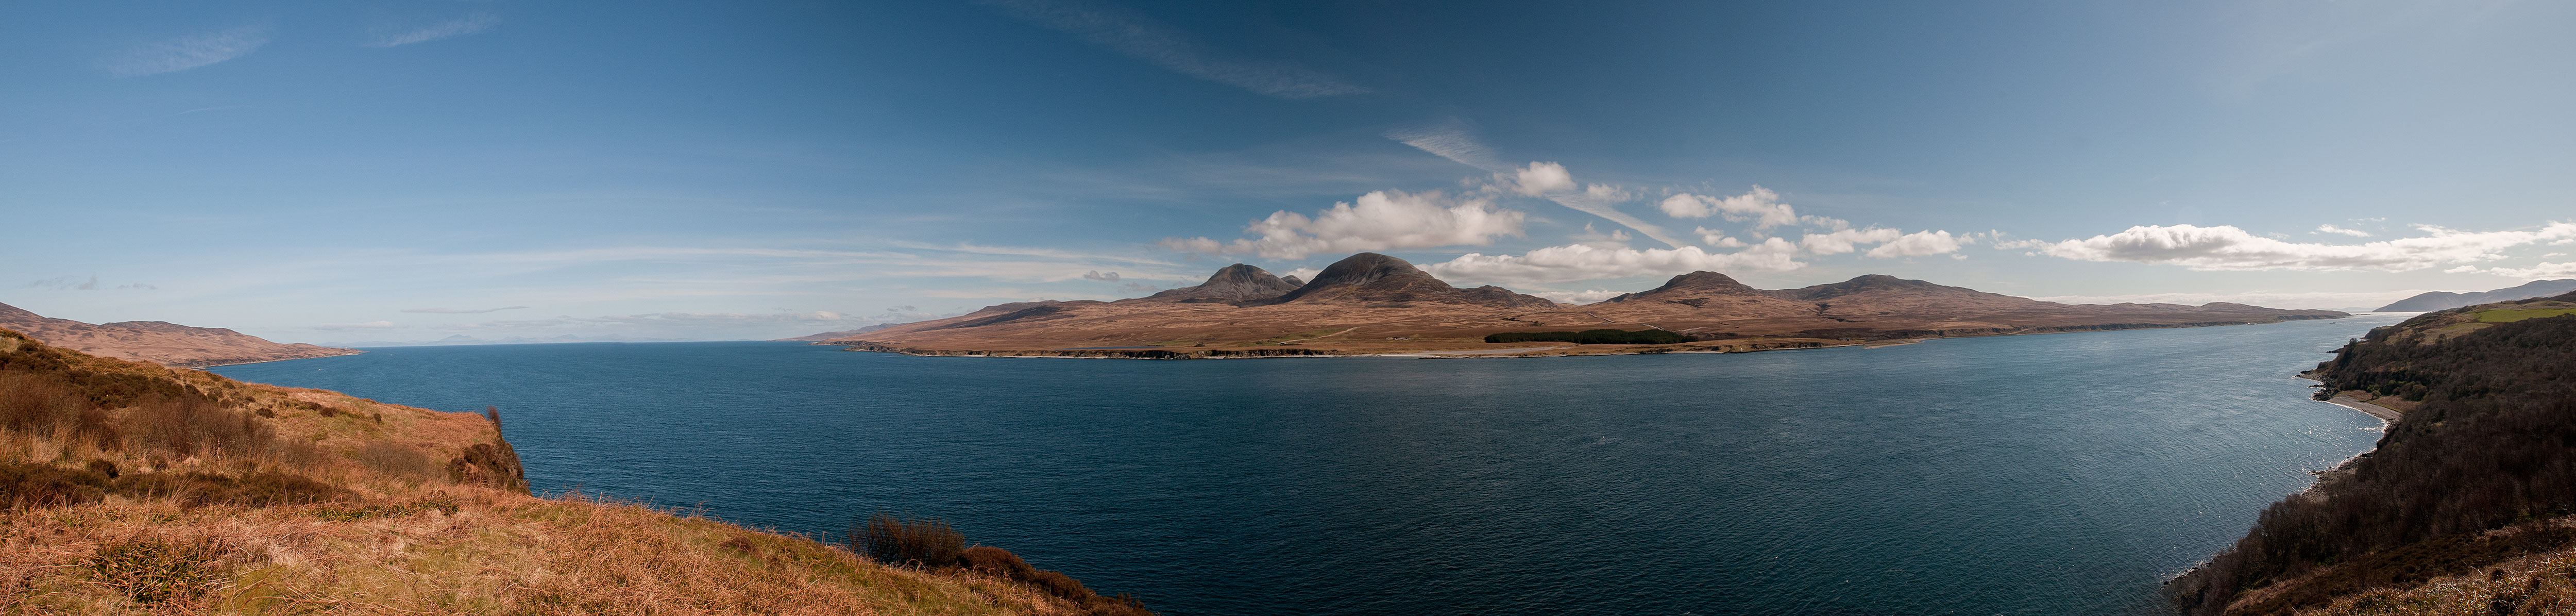 A view north and east from above Port Askaig on the adjacent Isle of Islay. The Paps of Jura are clearly visible. This is a stitch of seven images.Nikon D610, 17-35mm